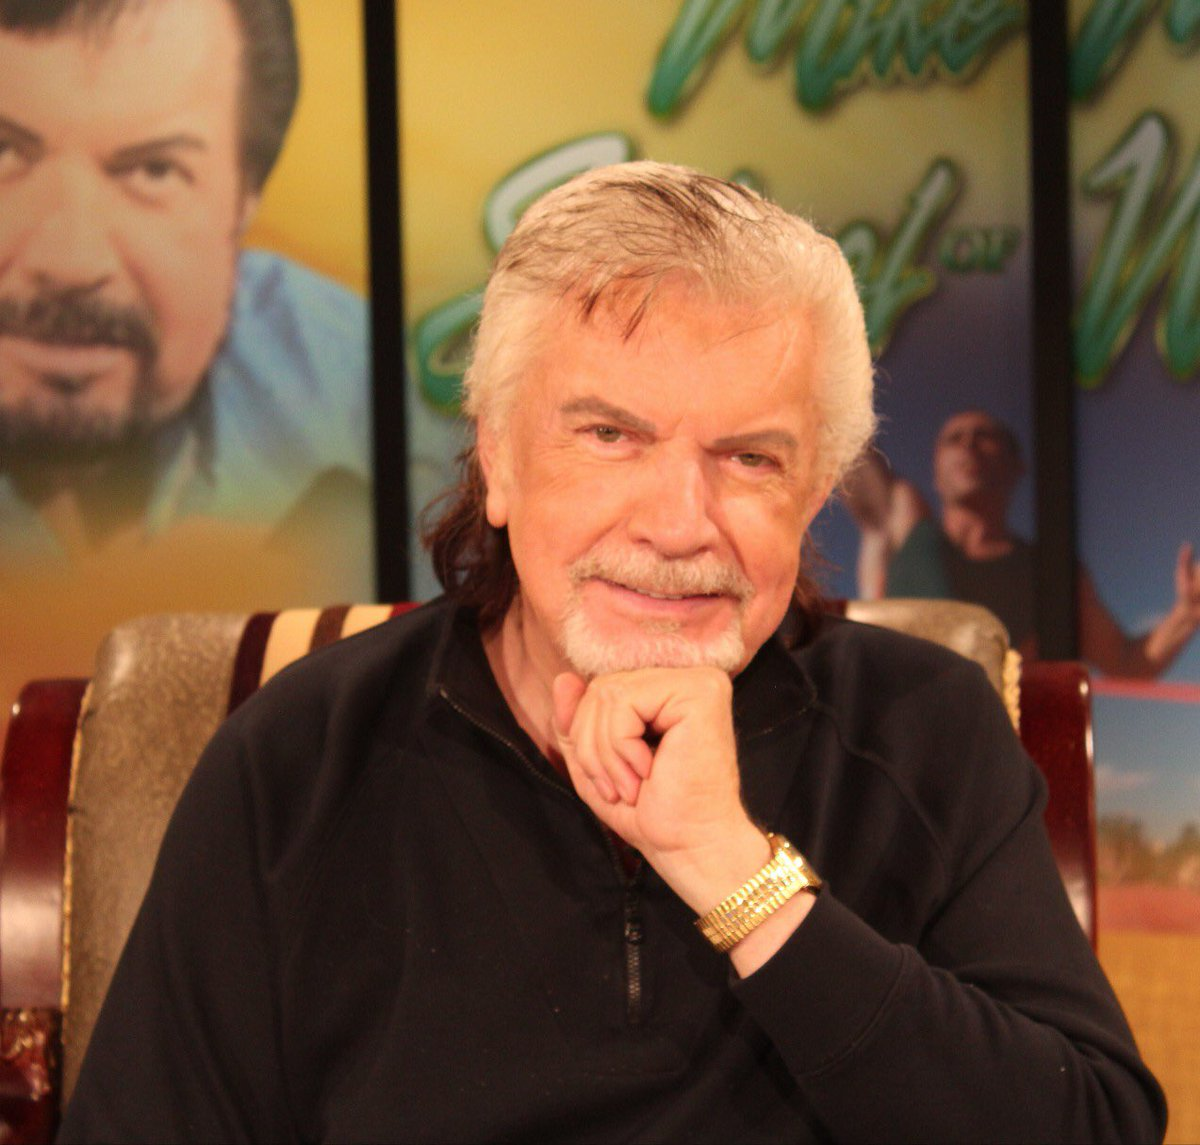 The 73-year old son of father (?) and mother(?) Mike Murdock in 2020 photo. Mike Murdock earned a 0.2 million dollar salary - leaving the net worth at  million in 2020